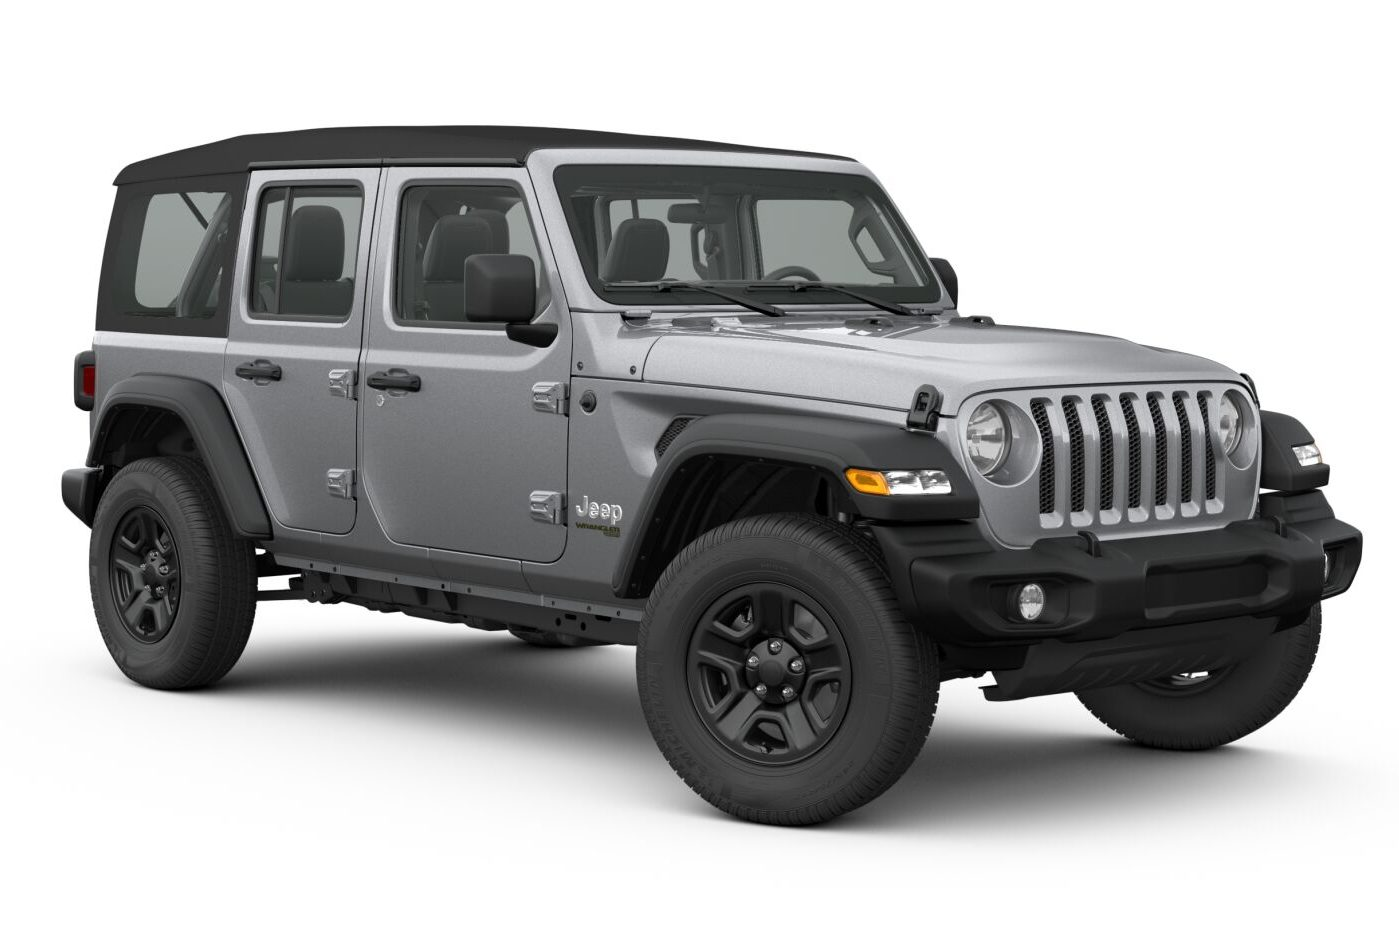 Jeep Wrangler 6-speed manual